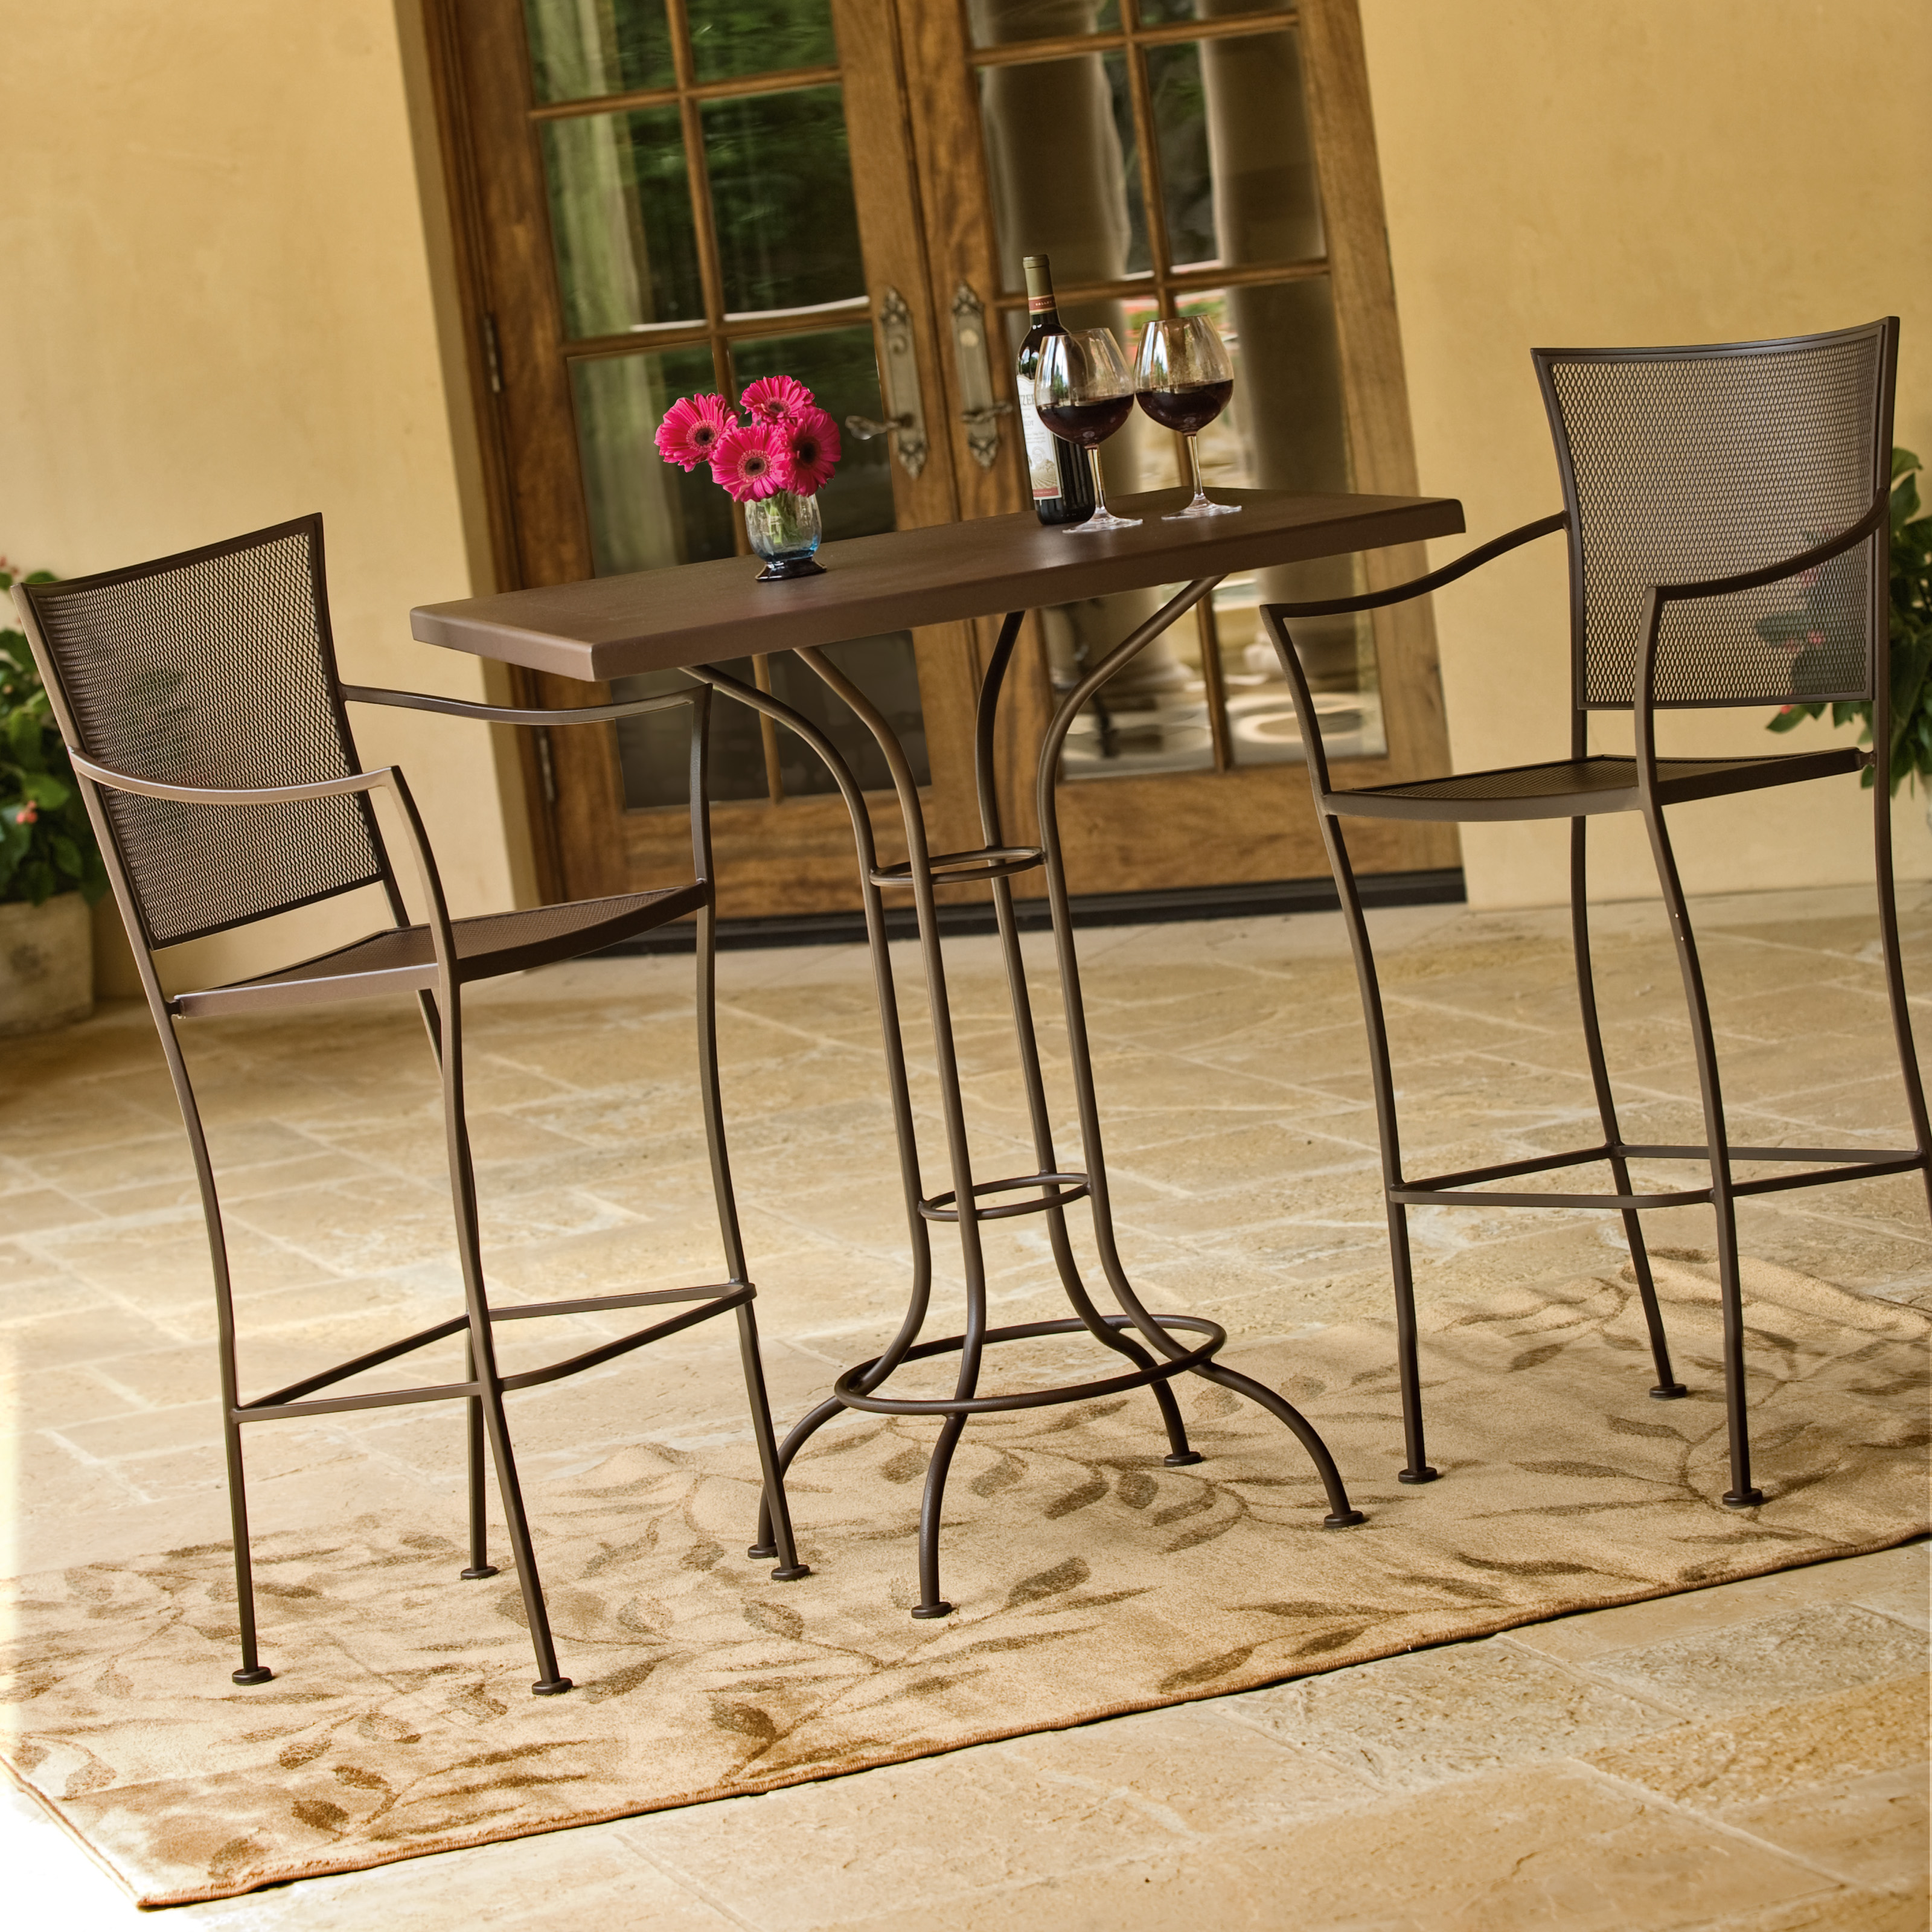 Woodard Amelie Bar Height Patio Dining Set Seats up to 4